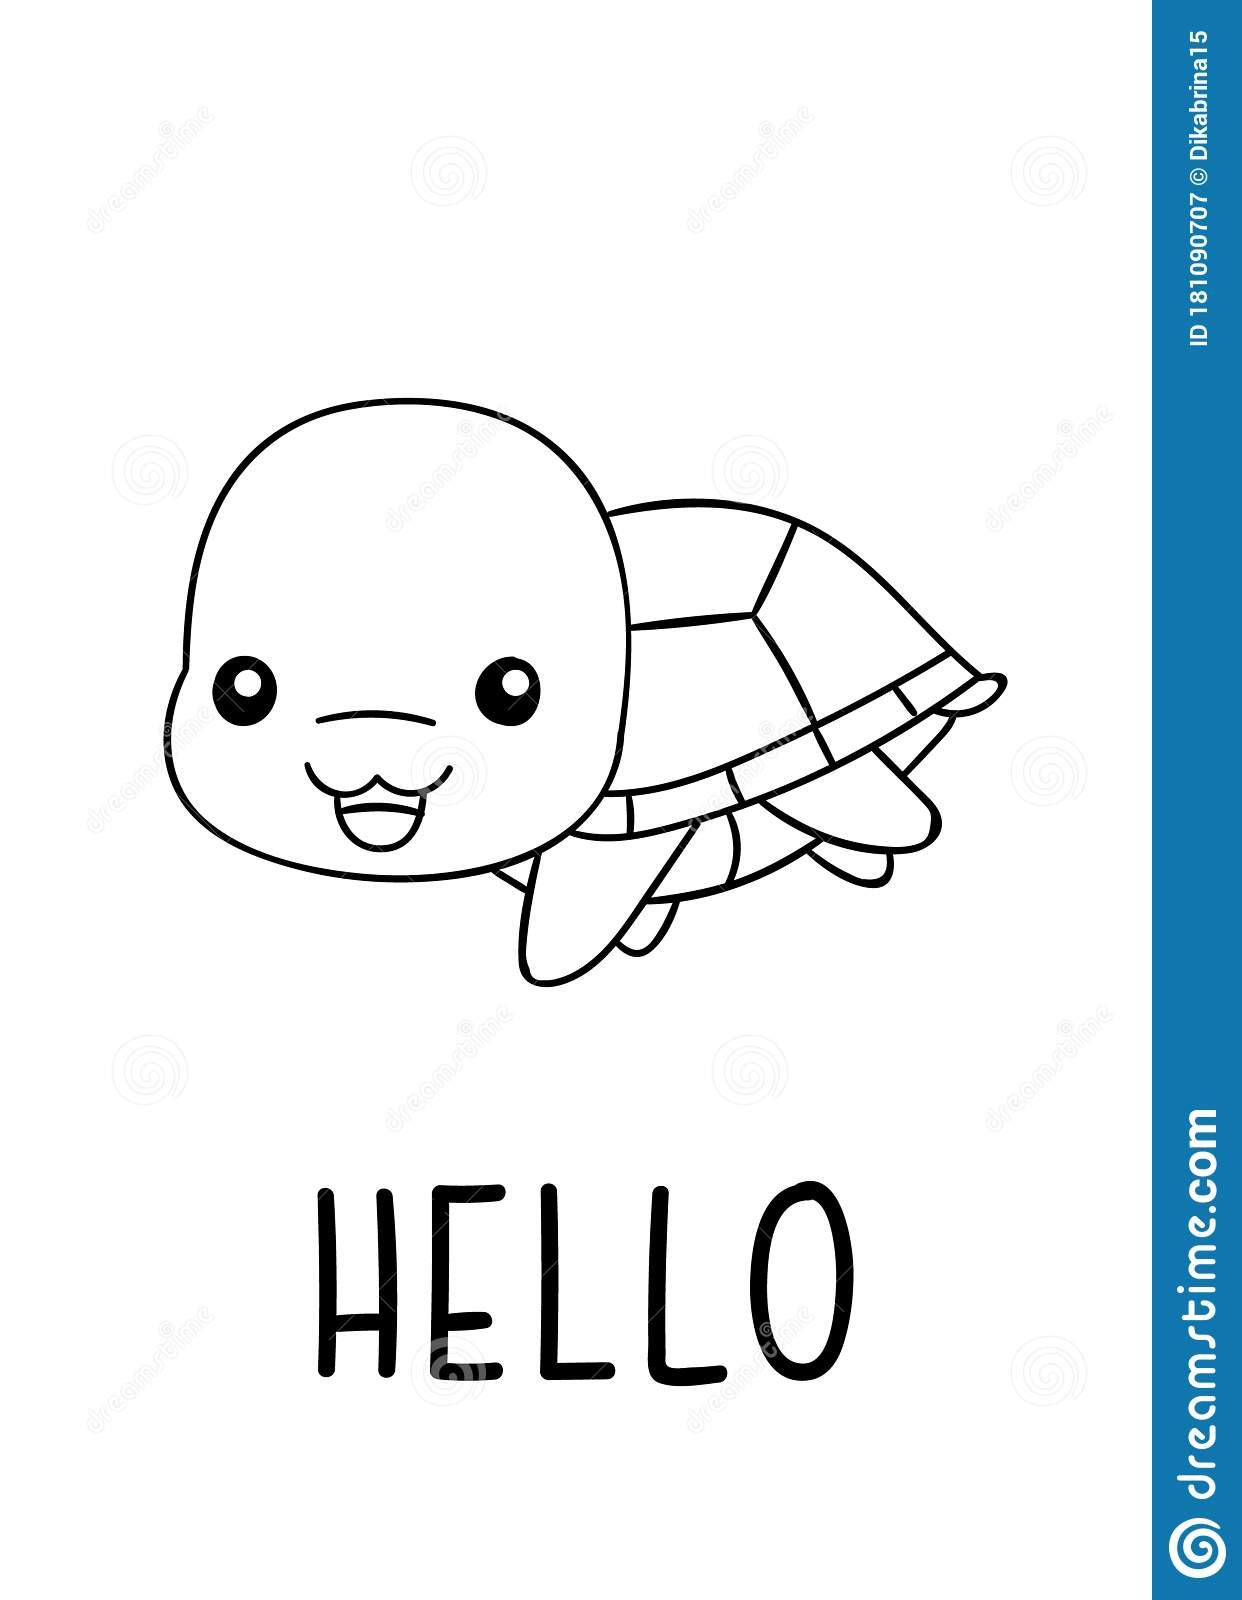 Coloring Pages Black And White Cute Kawaii Hand Drawn Turtle Doodles Lettering Hello Stock Vector Illustration Of Smile Hello 181090707